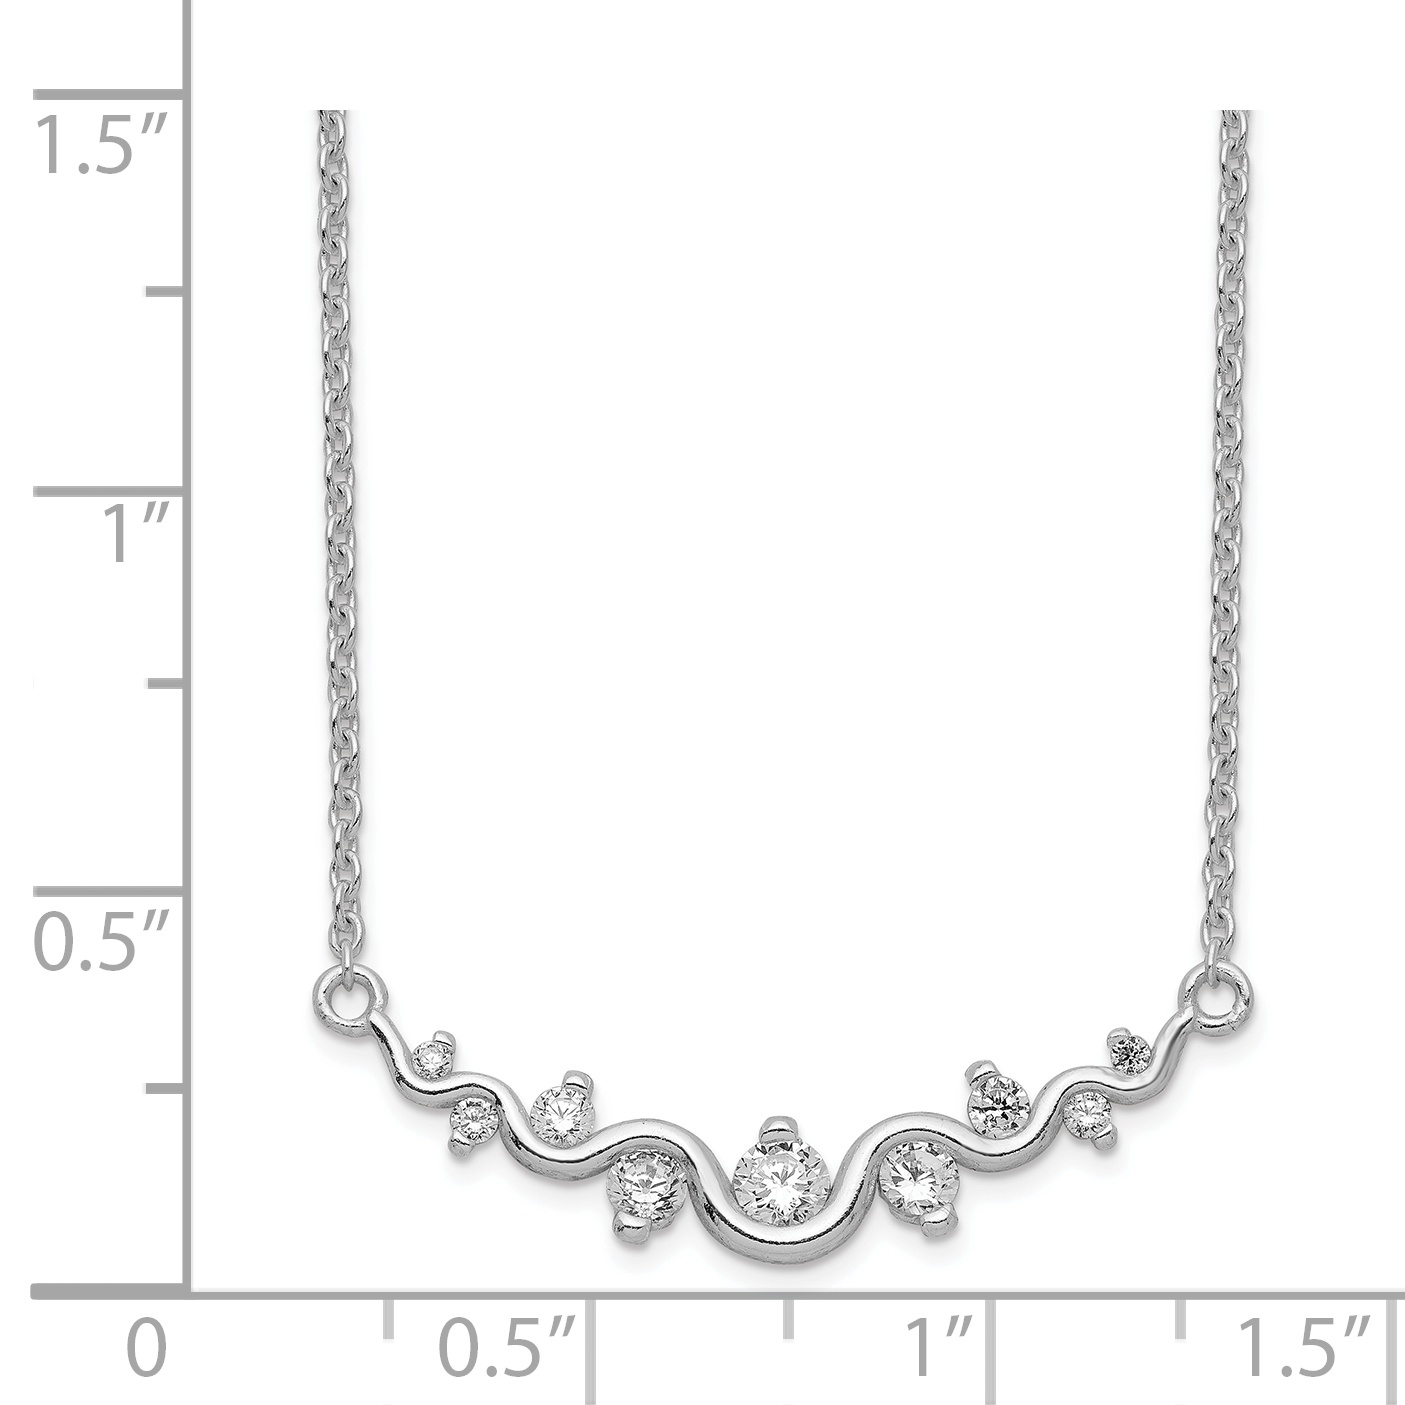 925 Sterling Silver Chain Necklace Pendant Charm Fancy Fine Jewelry Gifts For Women For Her